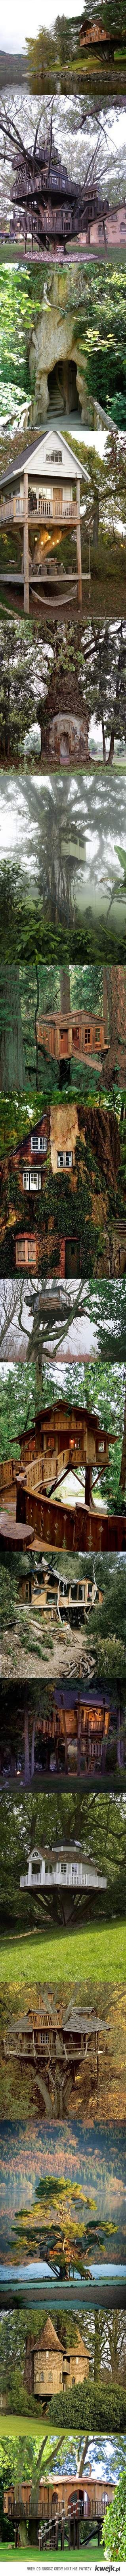 Epic tree houses